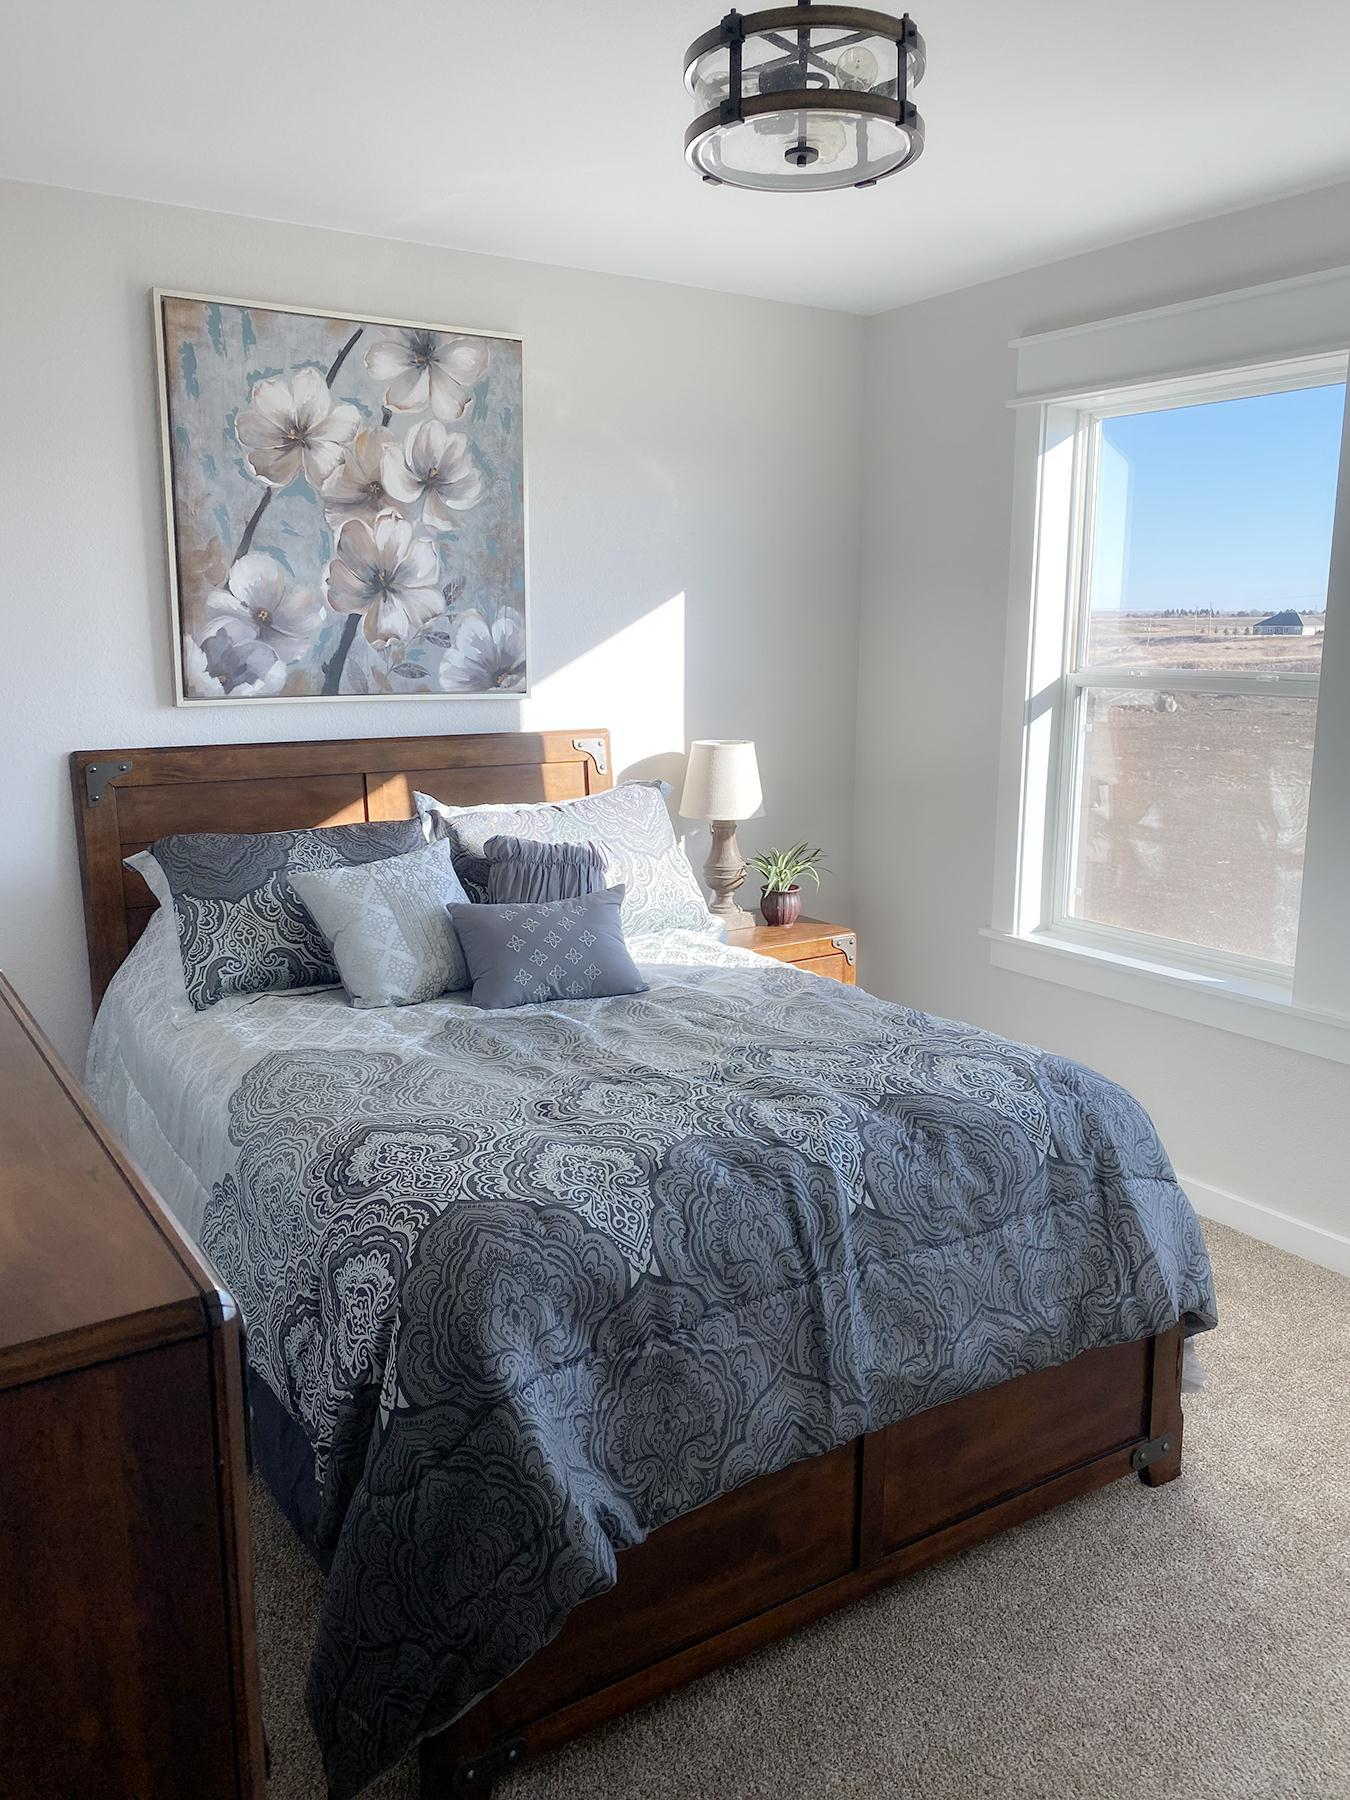 Bedroom featured in the McKinley Ranch By Windsong Custom Homes in Billings, ND